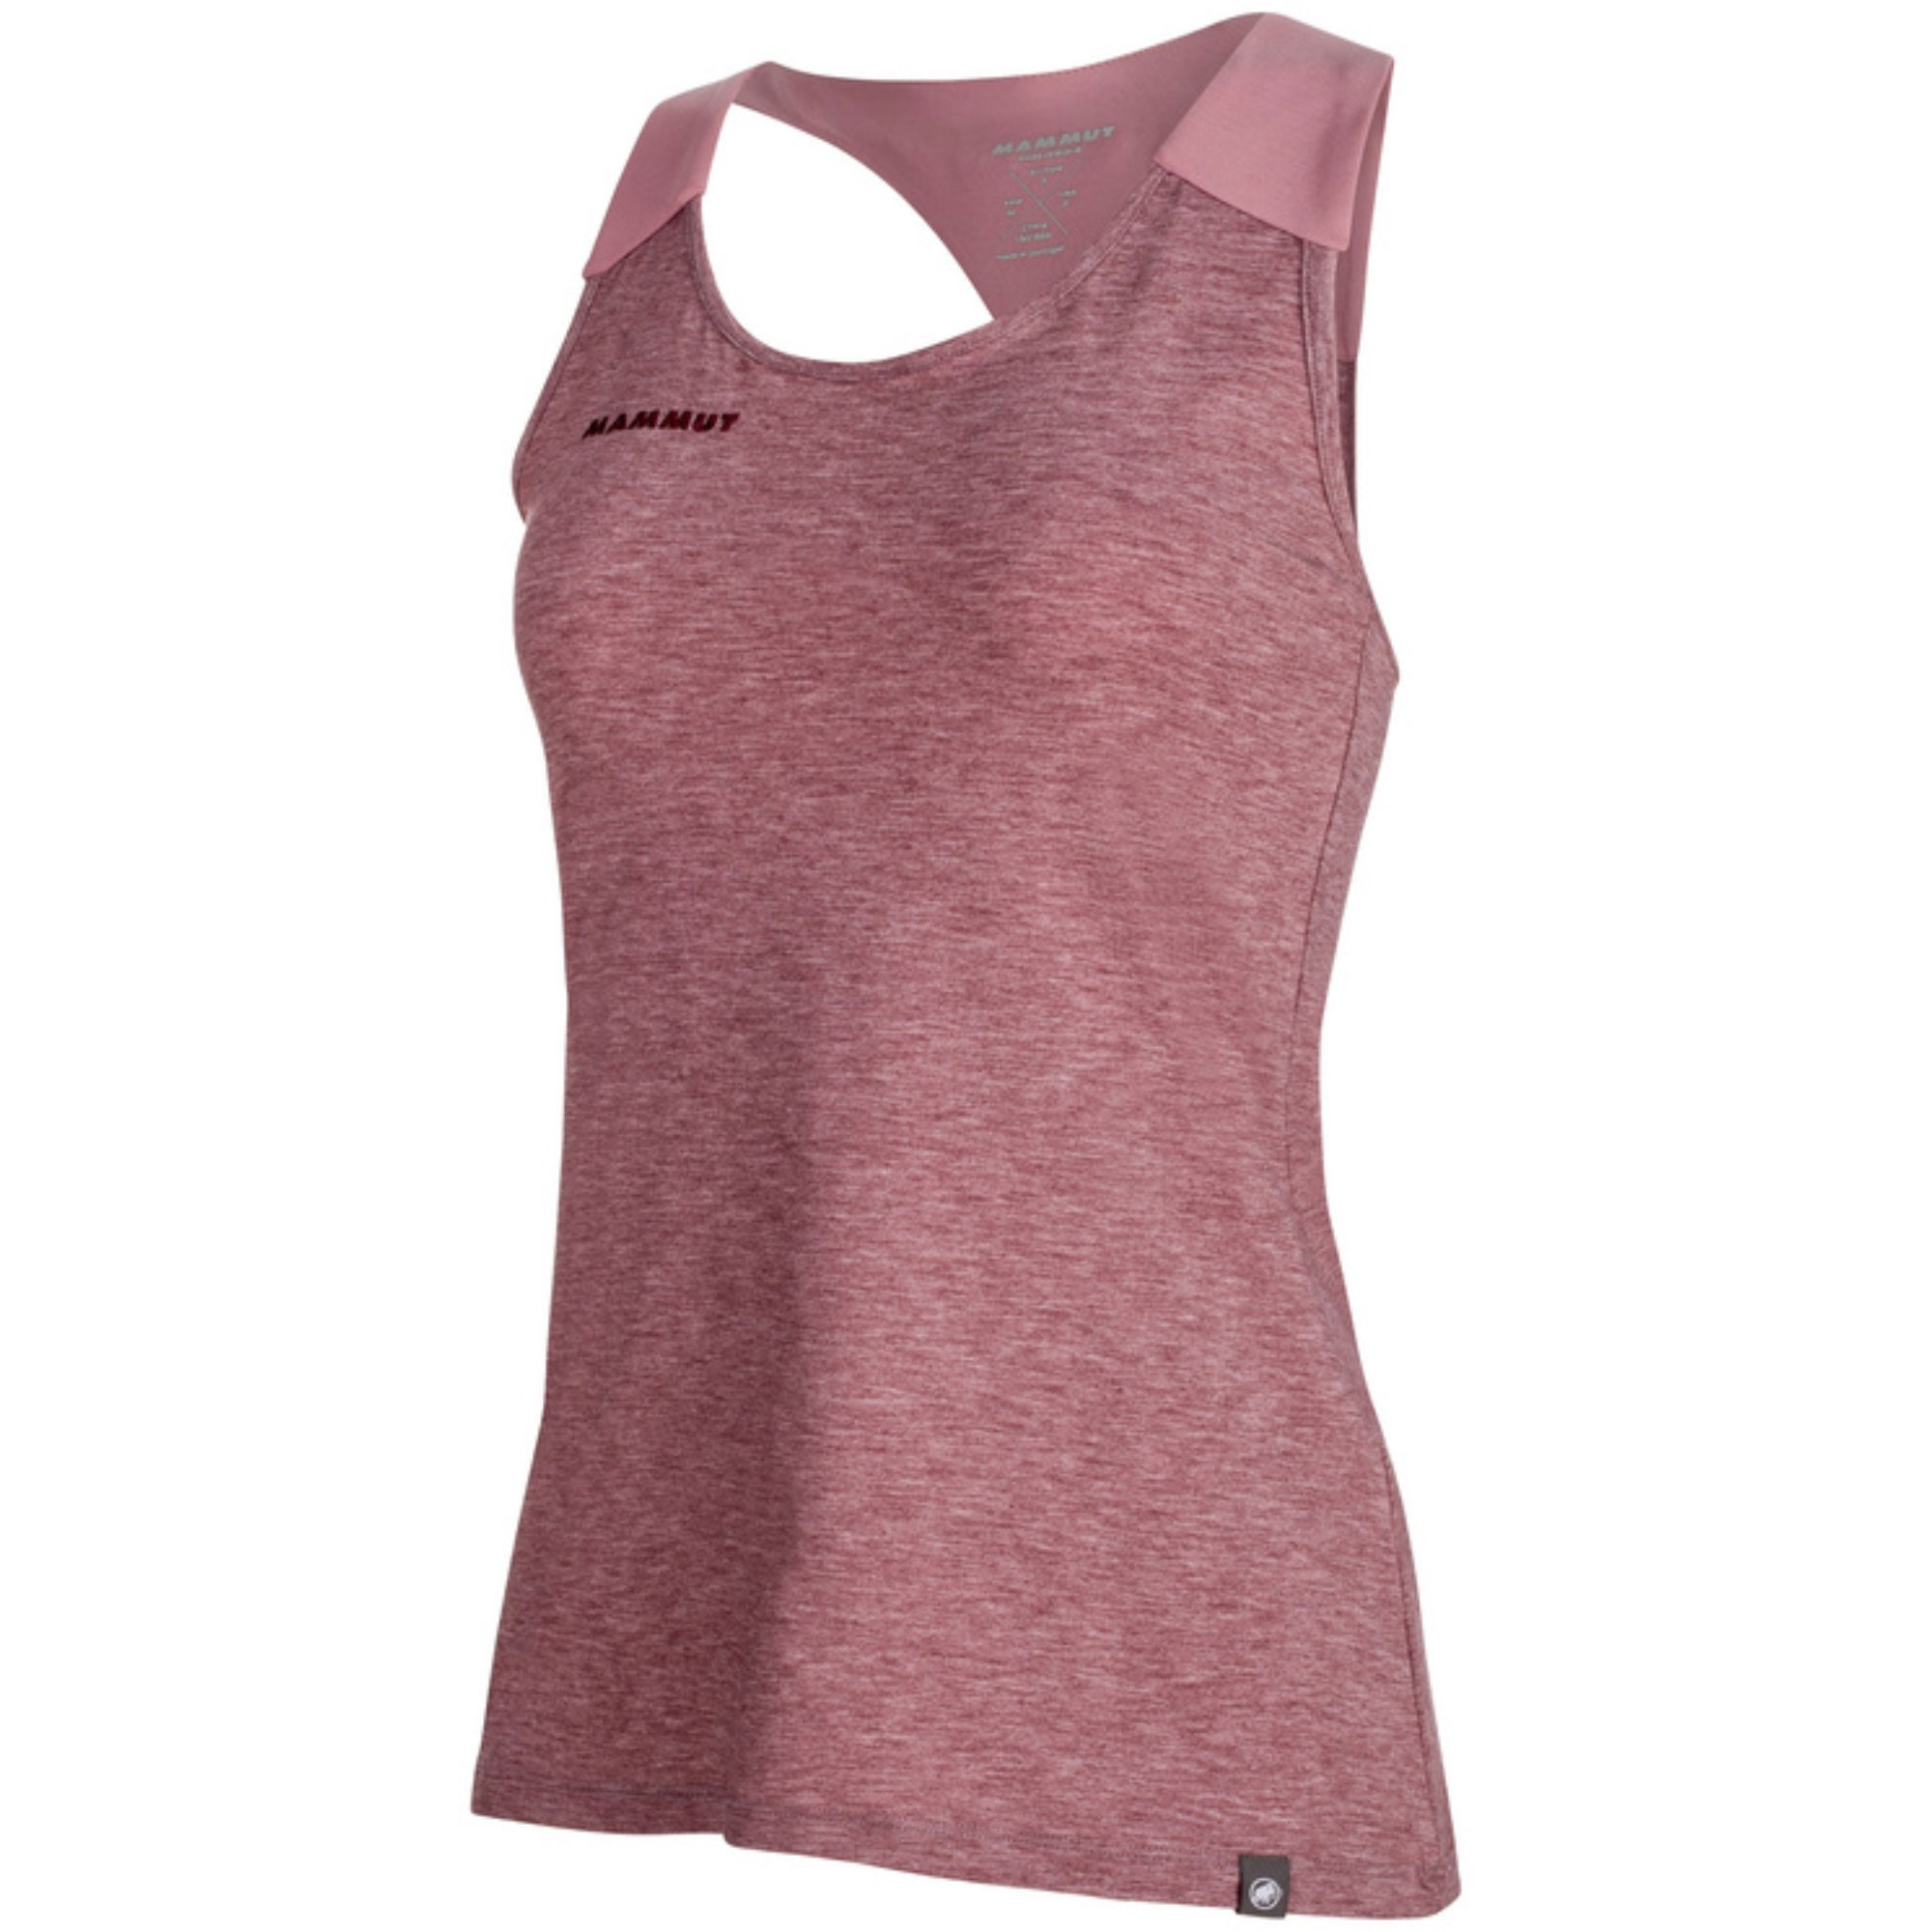 Mammut Wall Vest Top - Merlot Melange/Rose